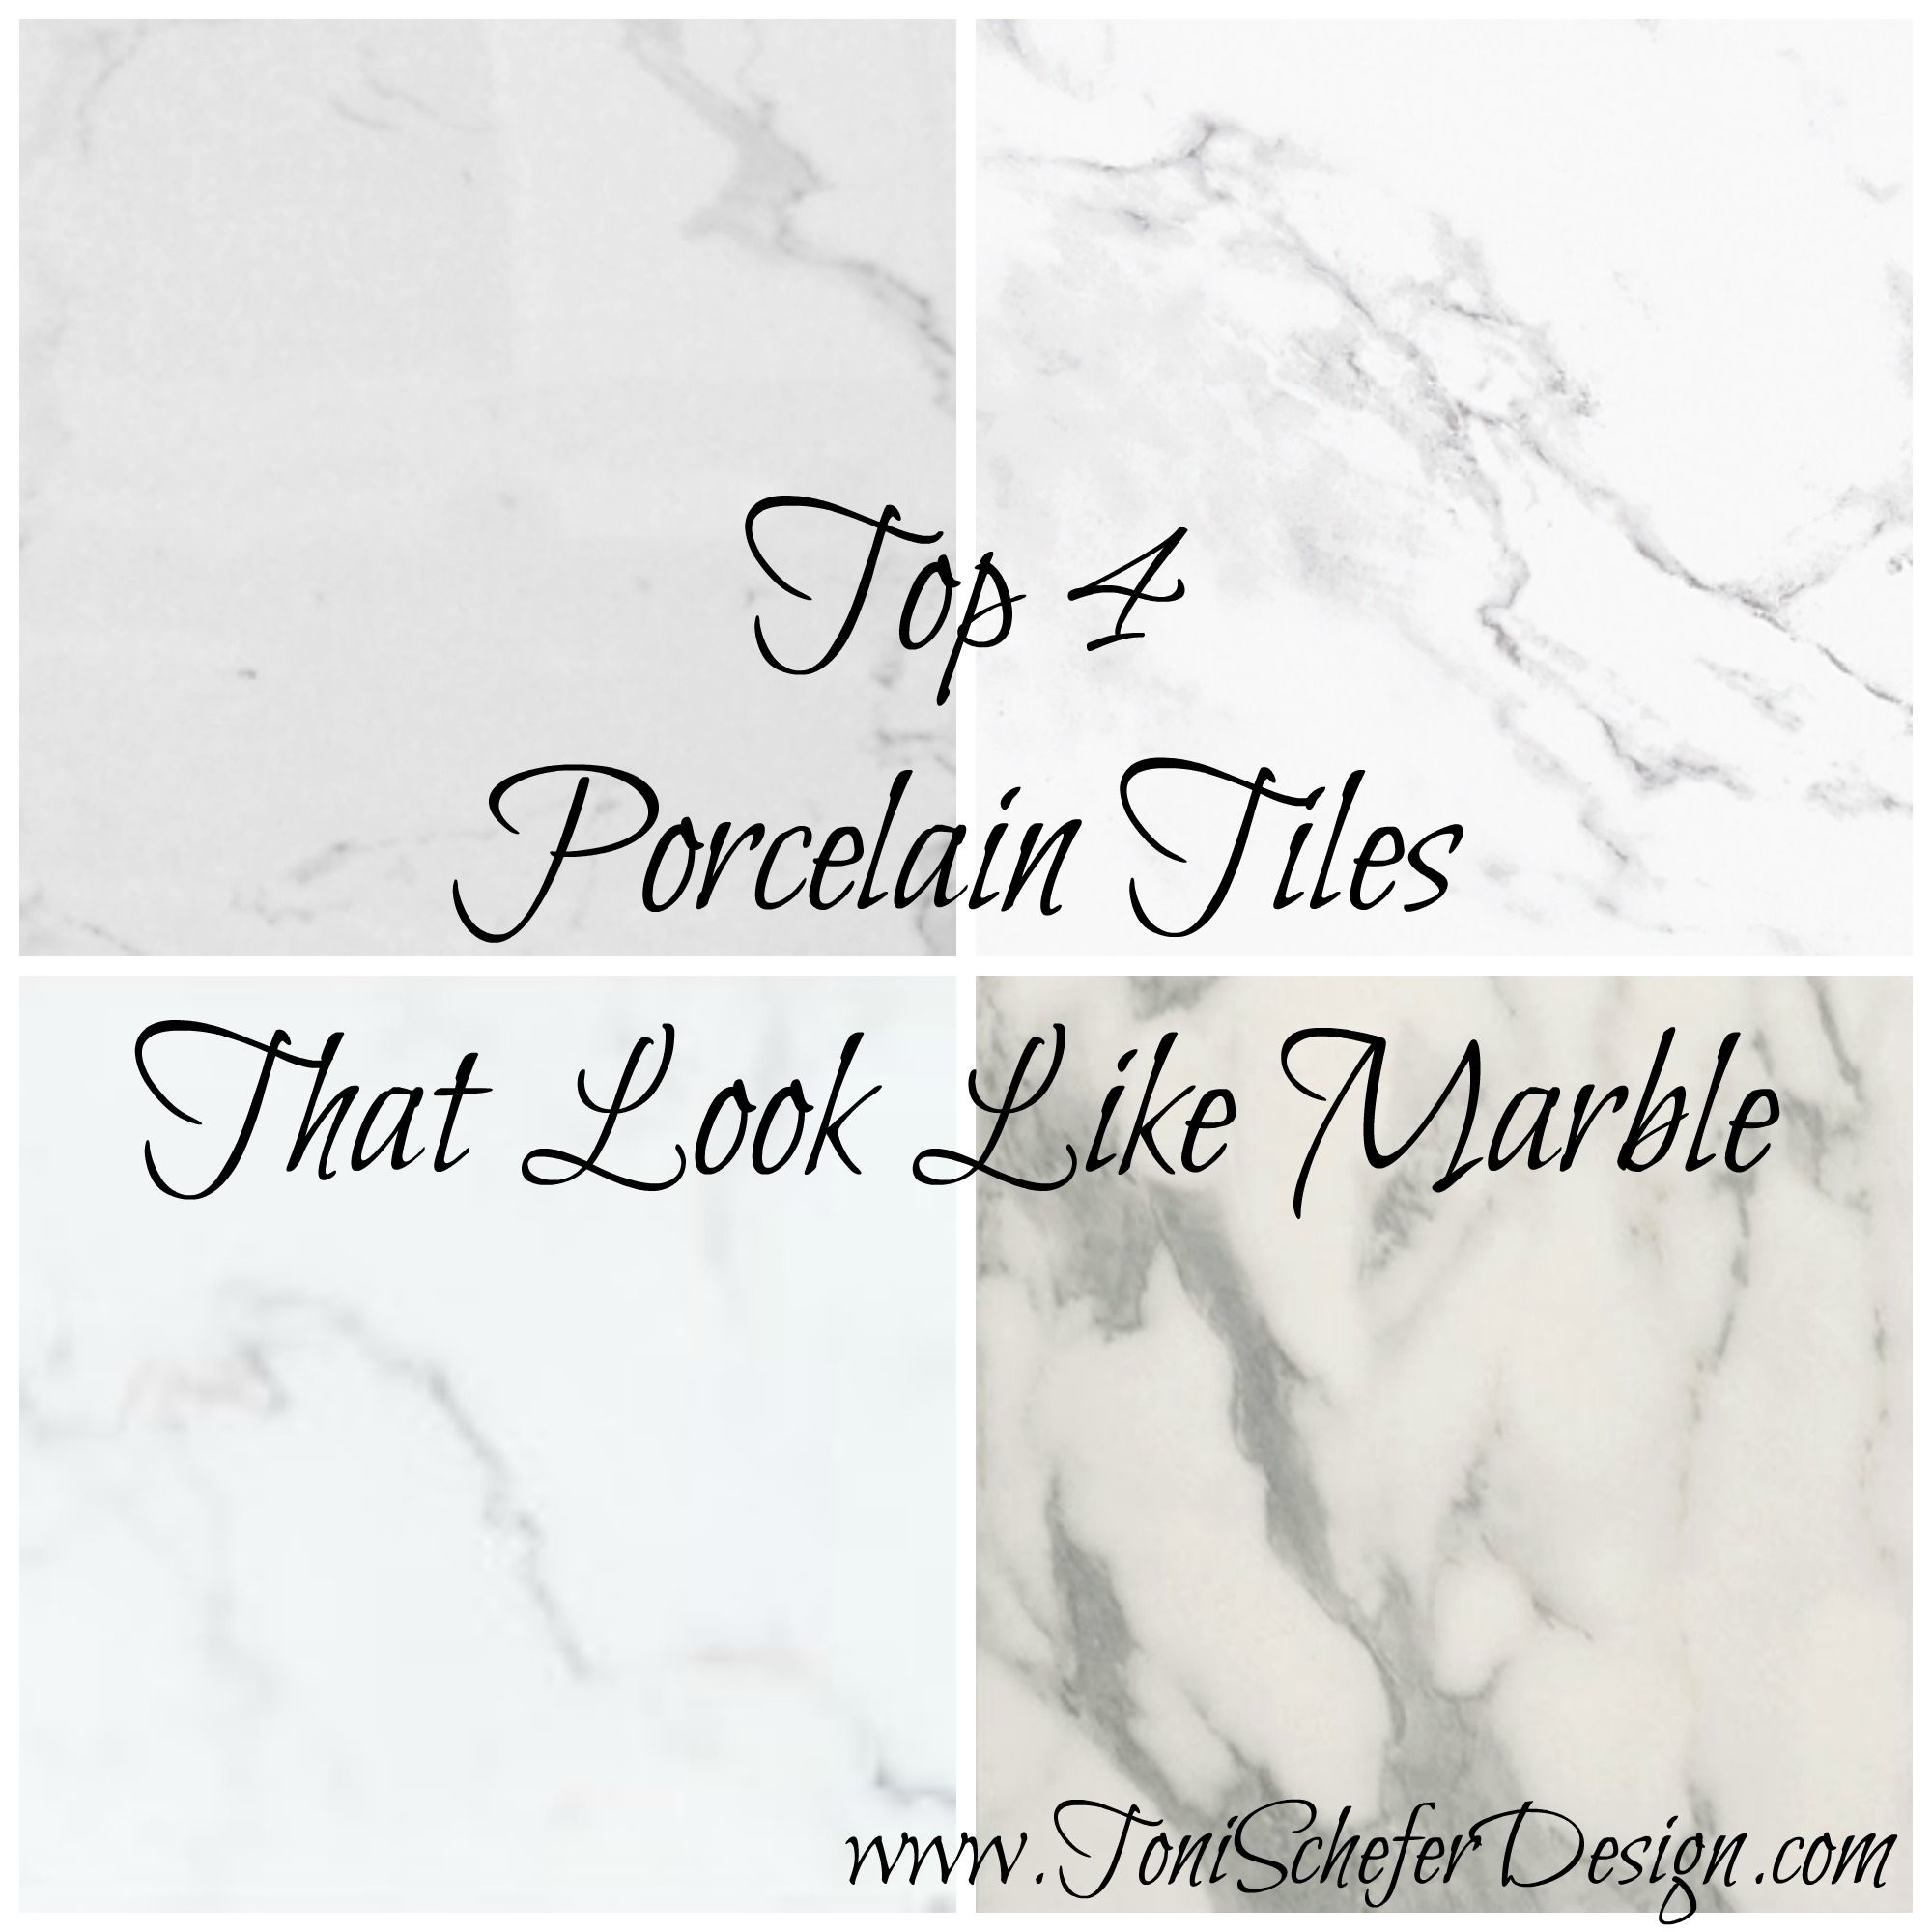 My favourite porcelain tiles that look like marble